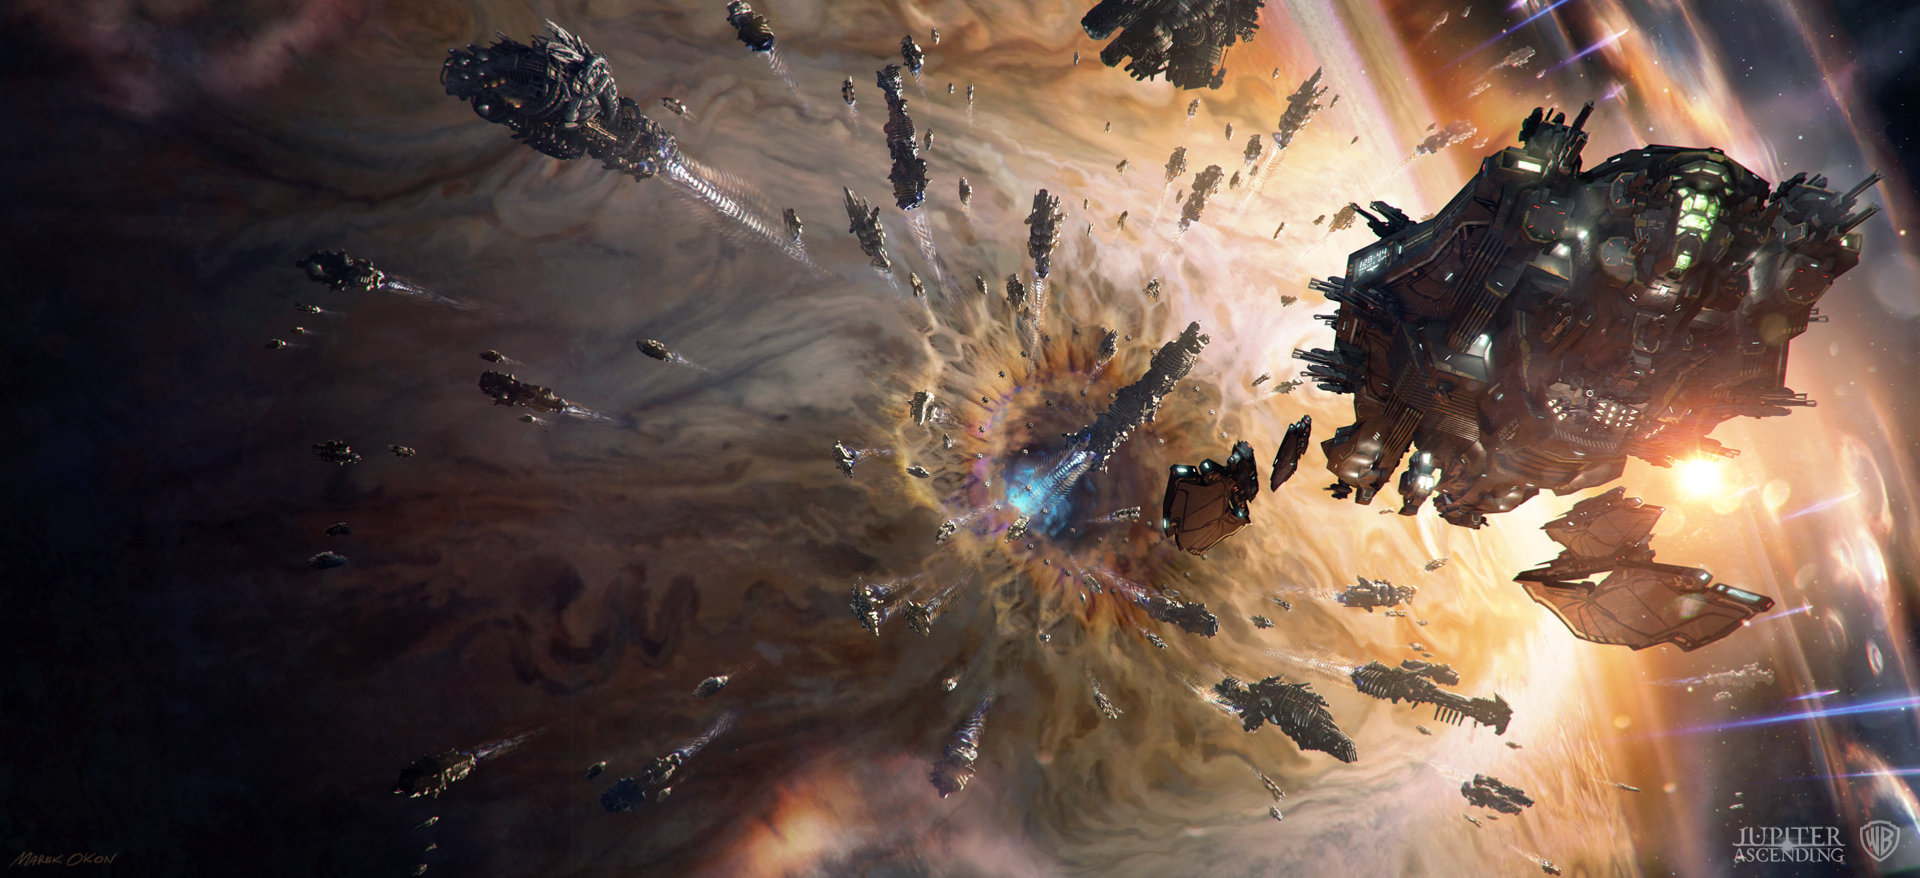 Marek okon jupiter escape web